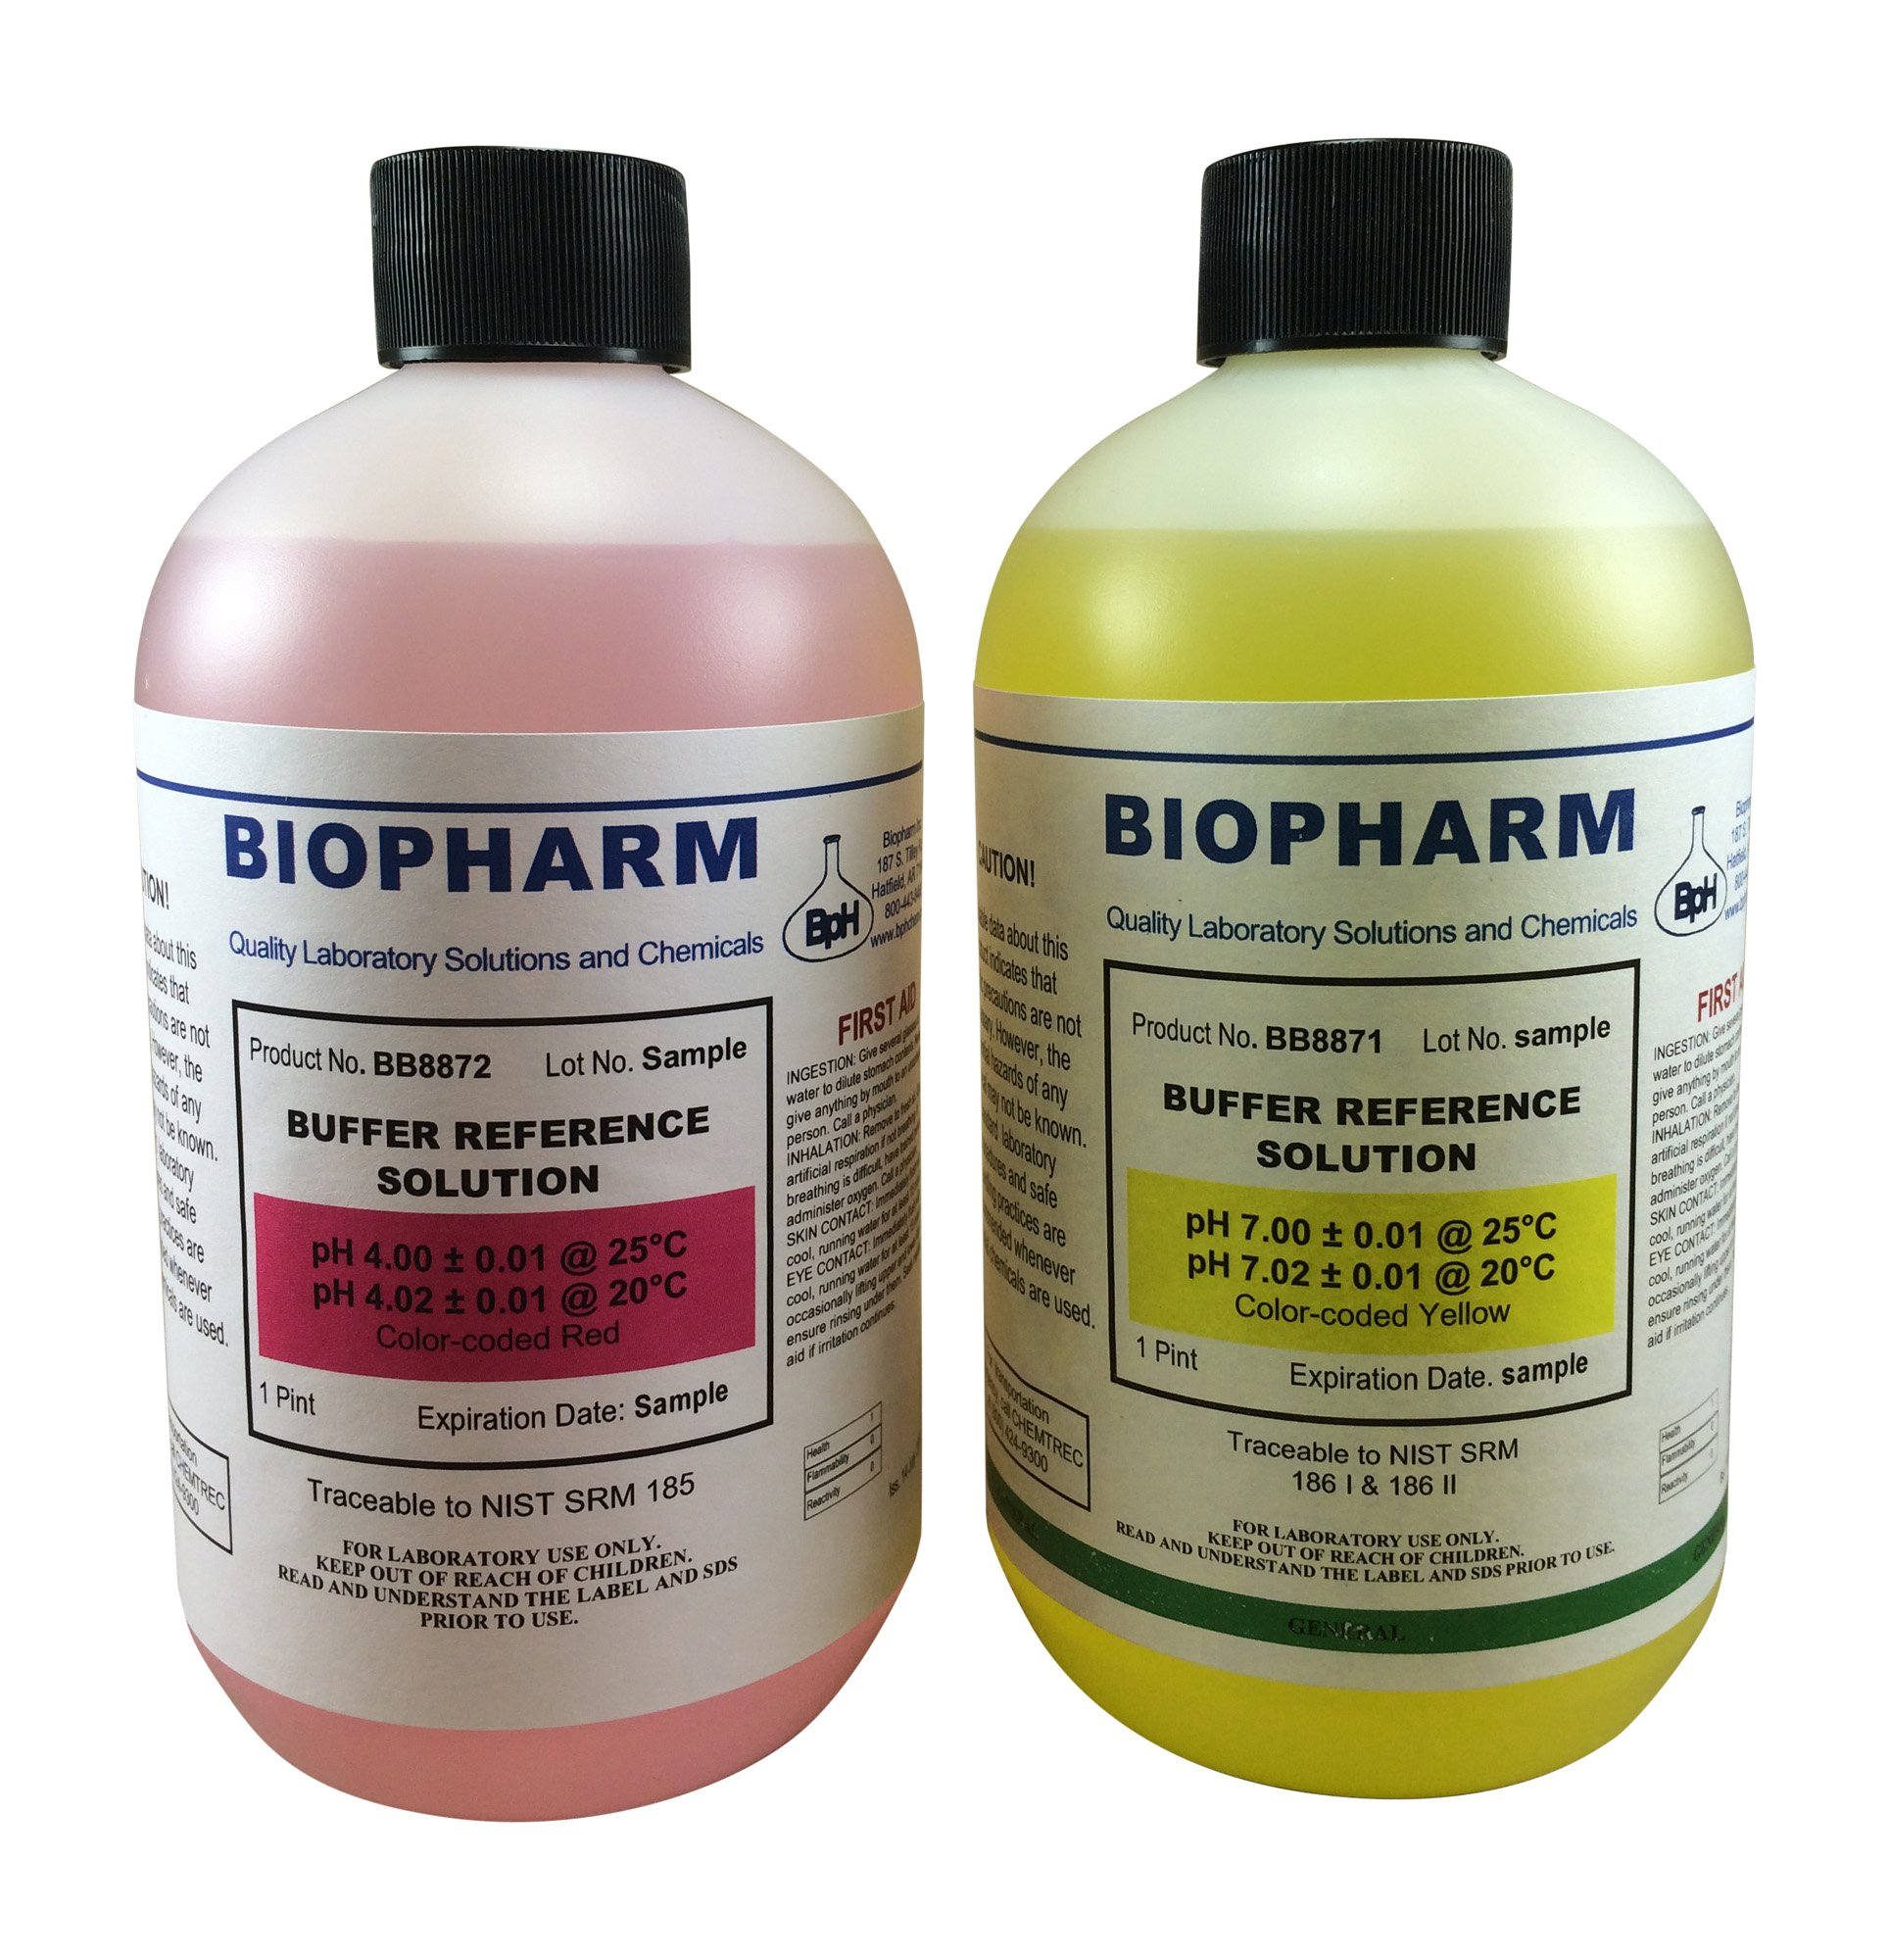 Biopharm pH Calibration Solution Kit (2) 16oz (500 ml) Bottles pH 4 and pH 7 Buffer NIST Traceable Reference Standards for All pH Meters by Biopharm